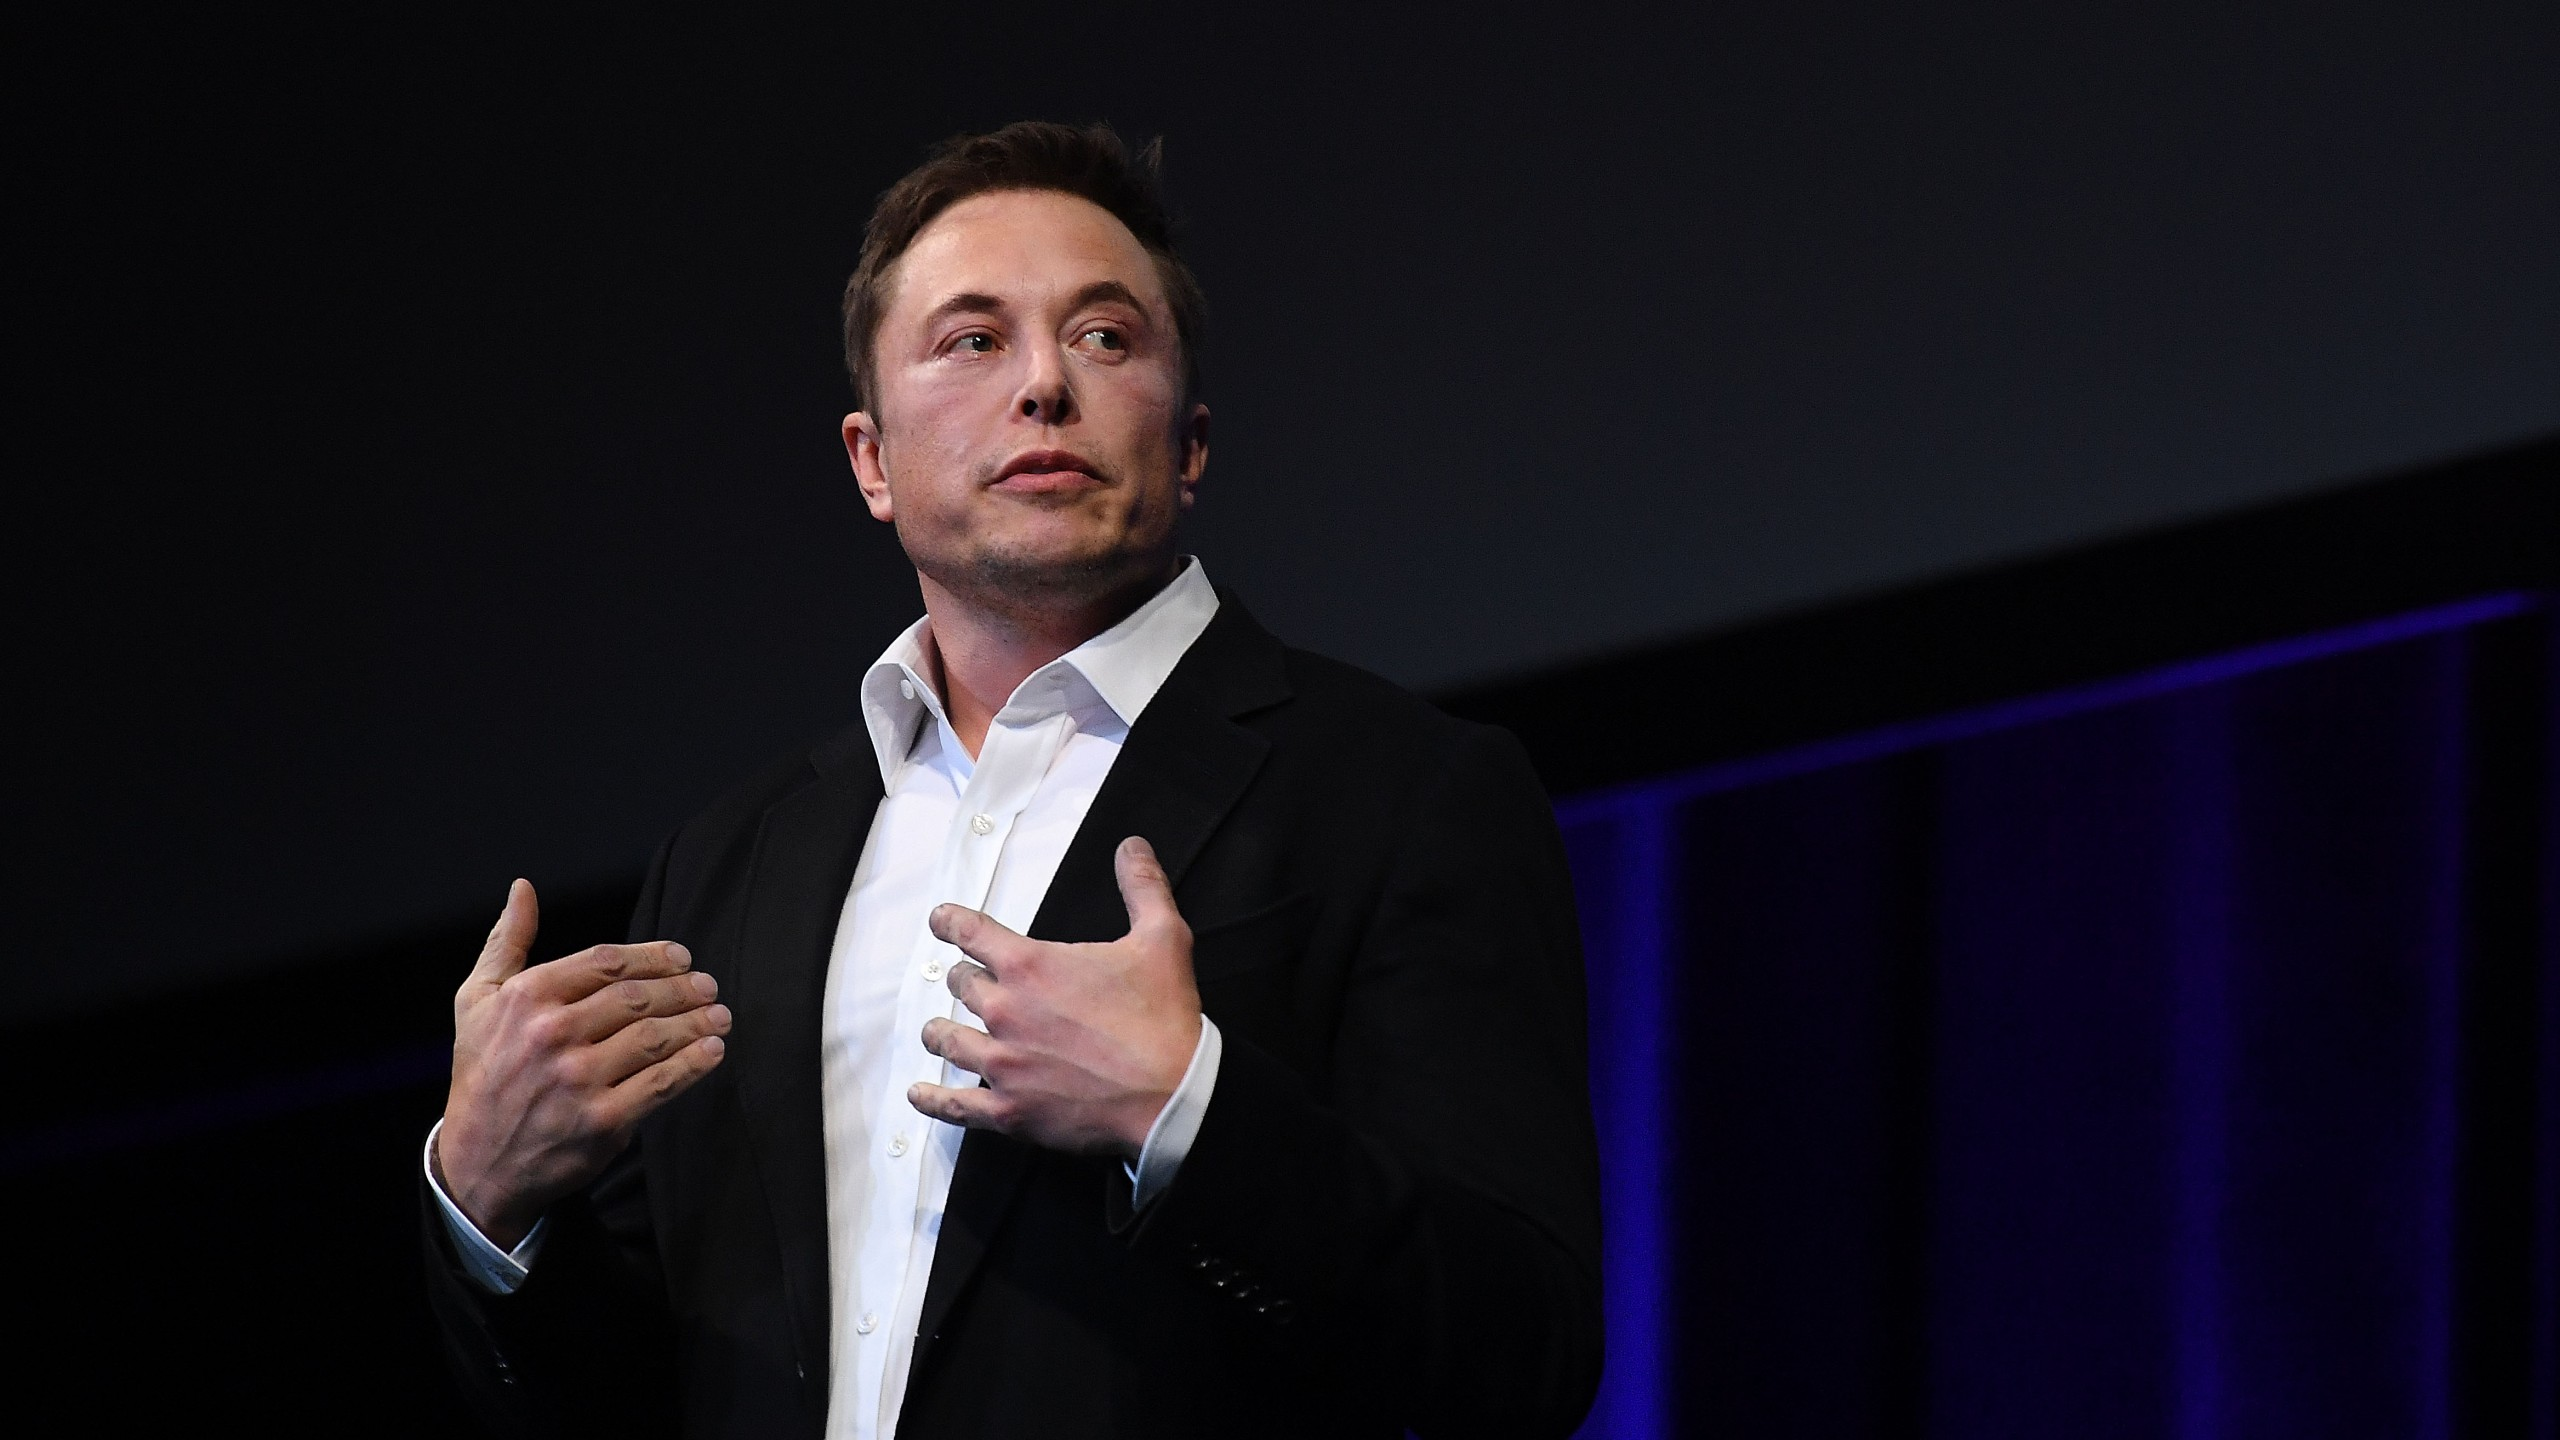 SpaceX and Tesla CEO Elon Musk speaks at the International Astronautical Congress on September 29, 2017 in Adelaide, Australia.(Credit: Mark Brake/Getty Images)